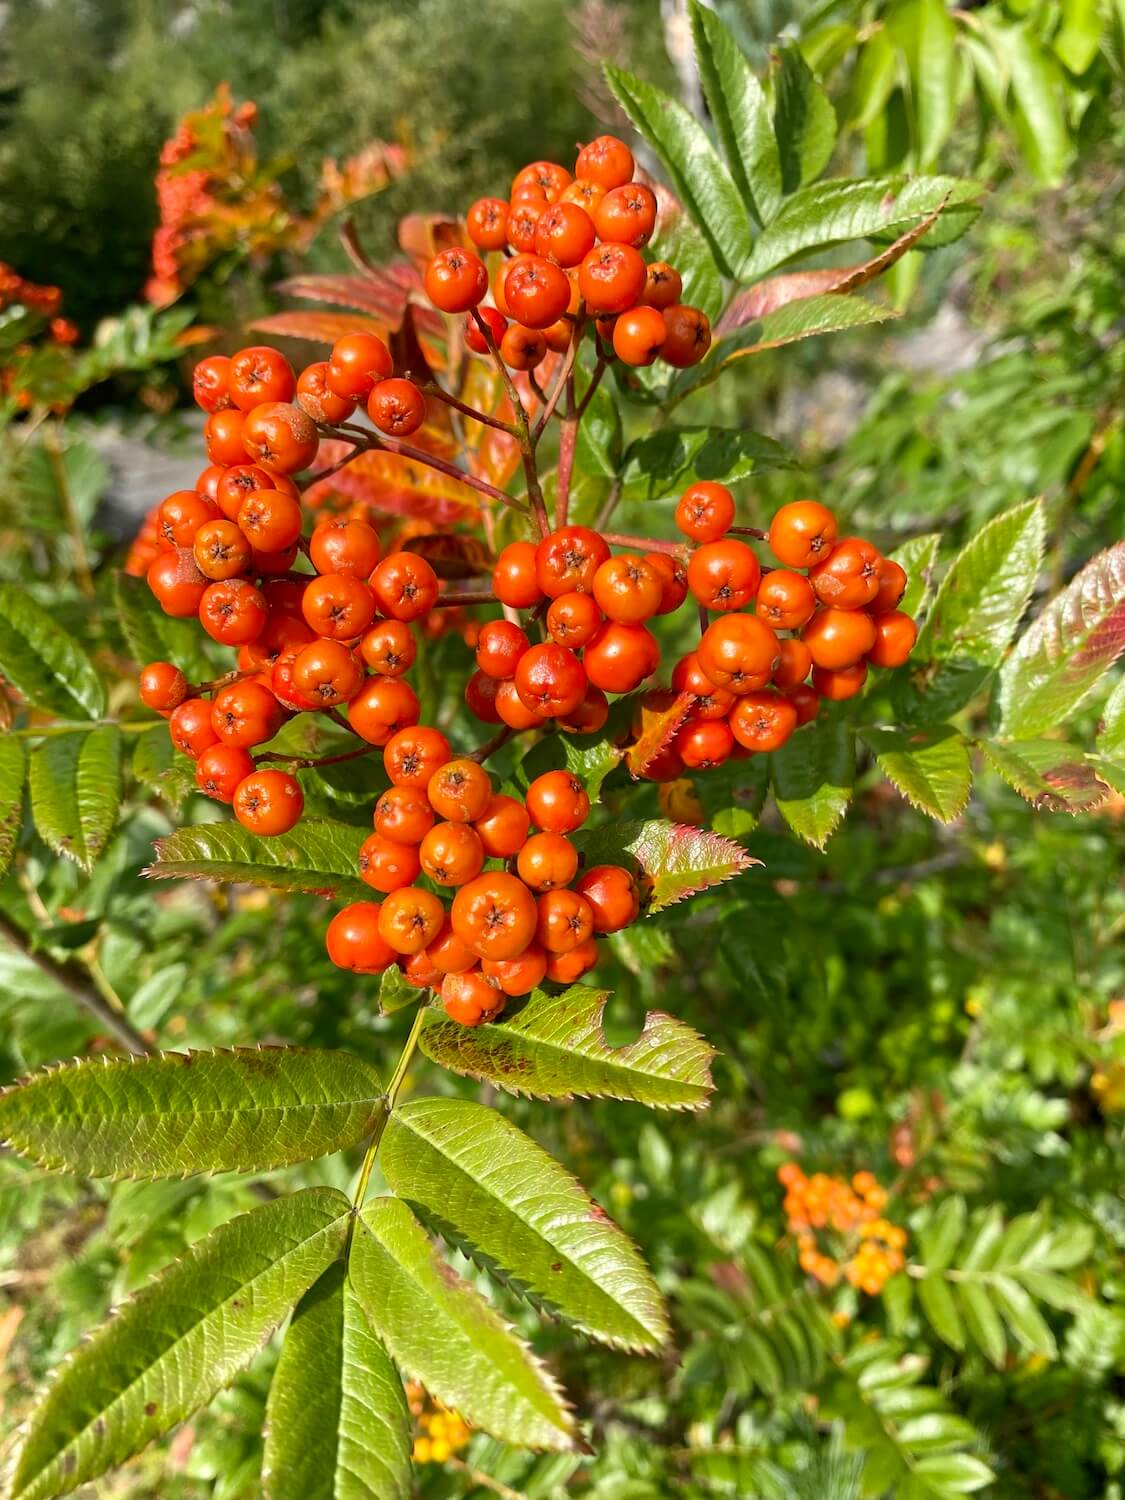 Some bright red berries cling to a green branch on a shrub.